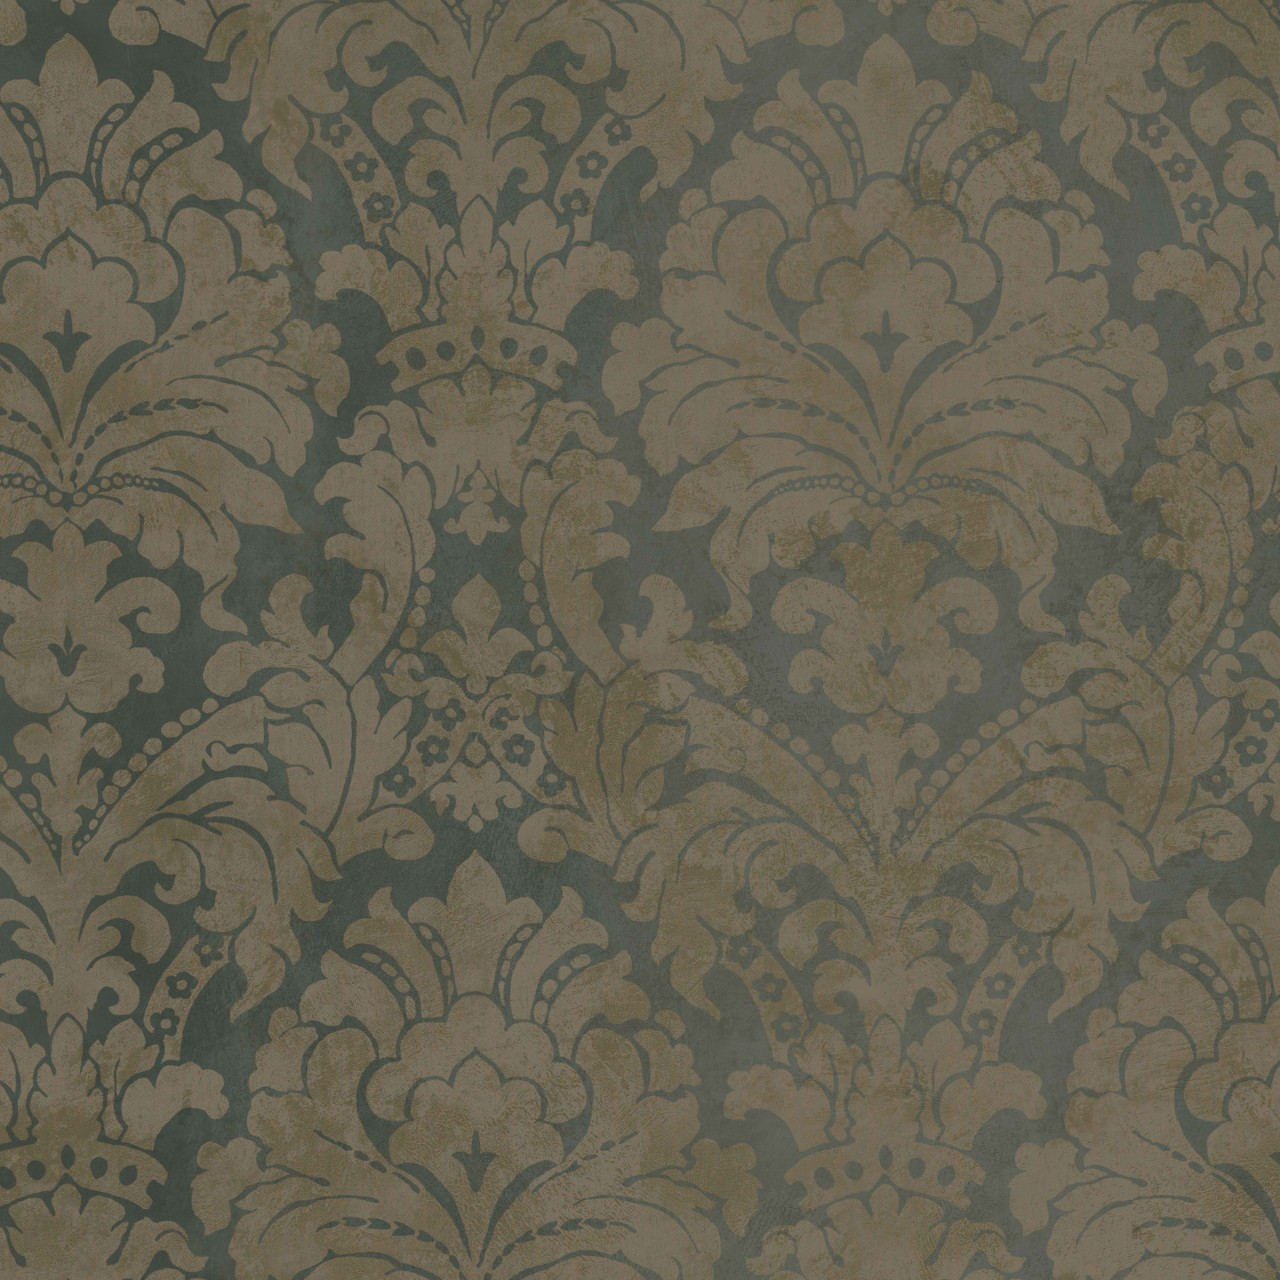 Dark Blue Copper HAV40847 Palace Damask Wallpaper 1280x1280